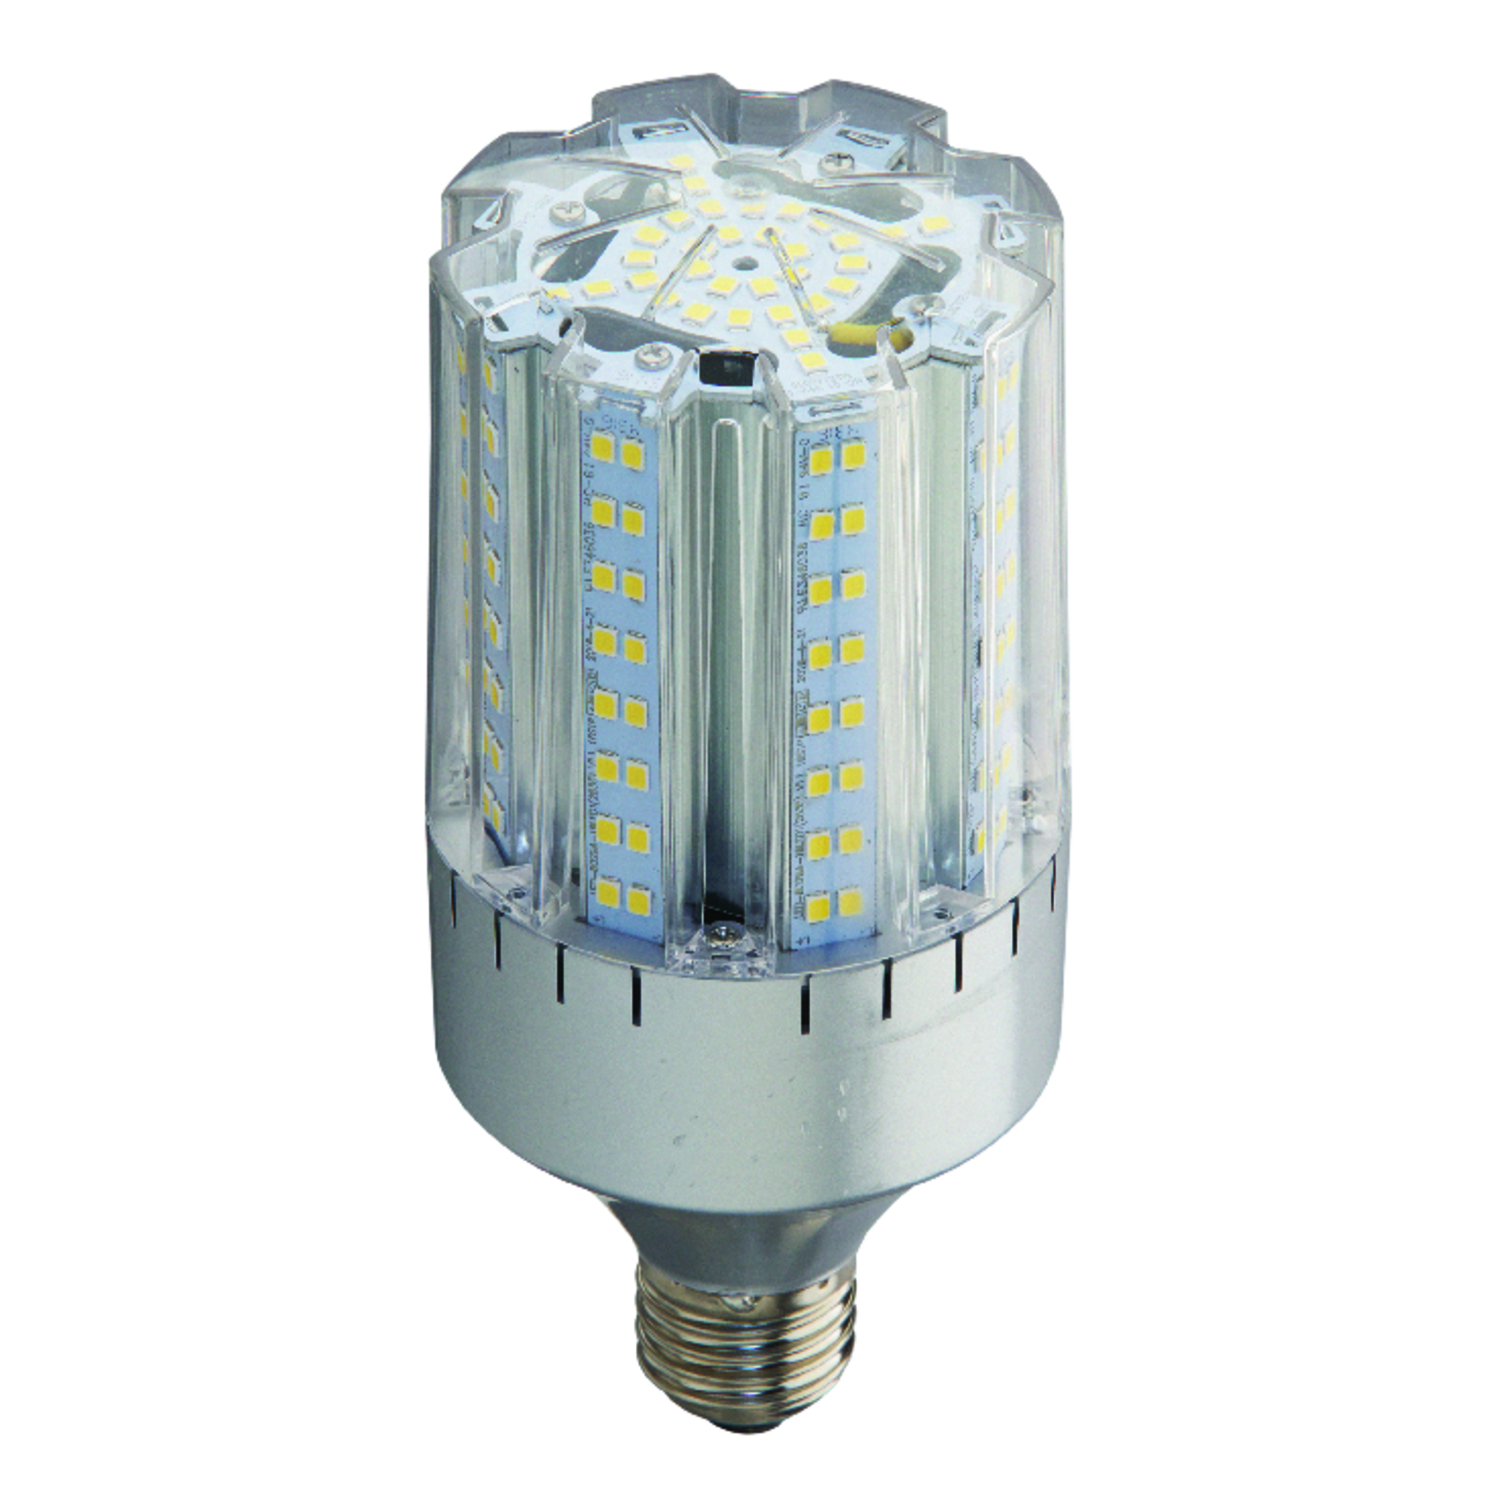 Light Efficient Design  24 watts PL  LED Bulb  3422.4 lumens Cool White  100 Watt Equivalence Globe